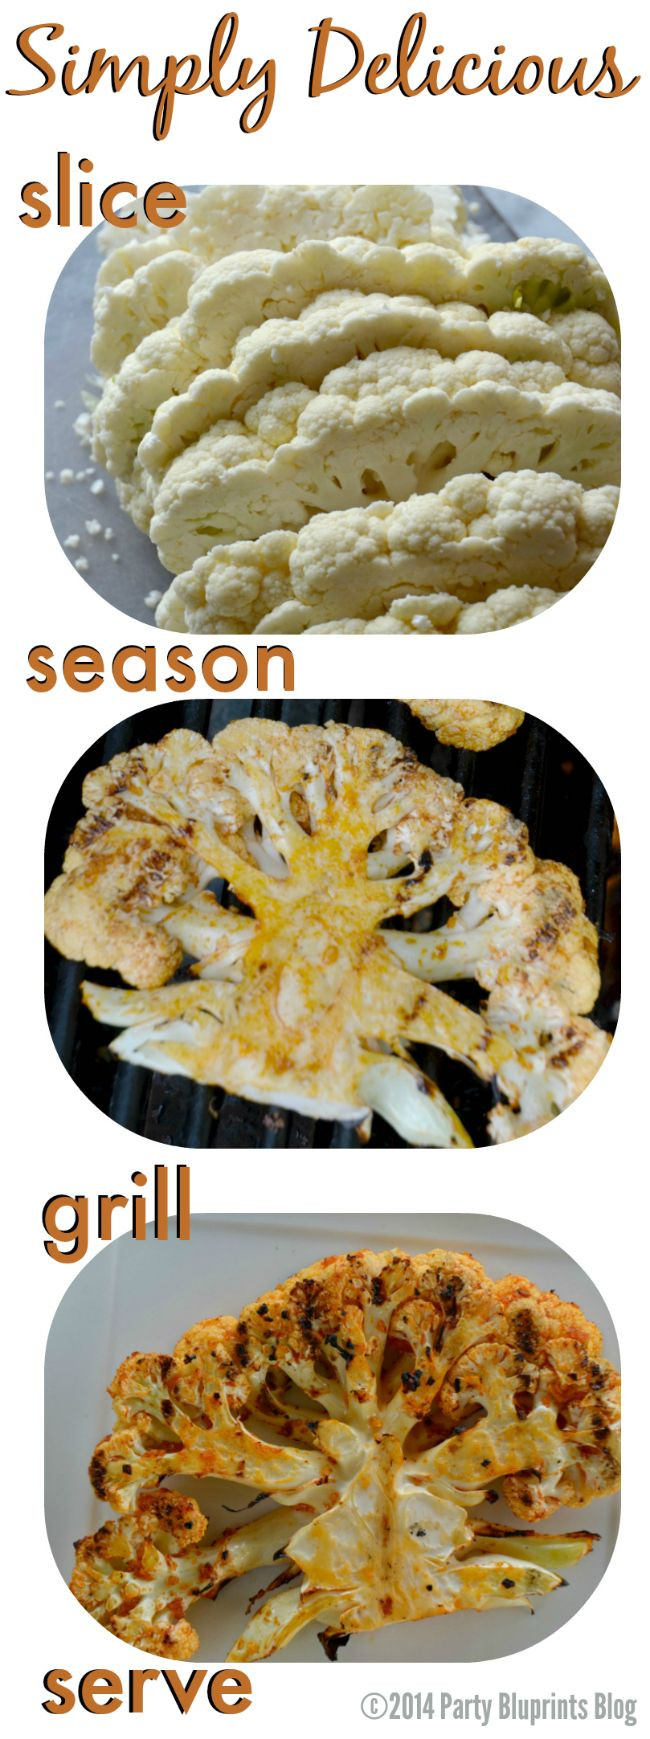 Grilled Cauliflower Steaks – Two Recipes To Share!